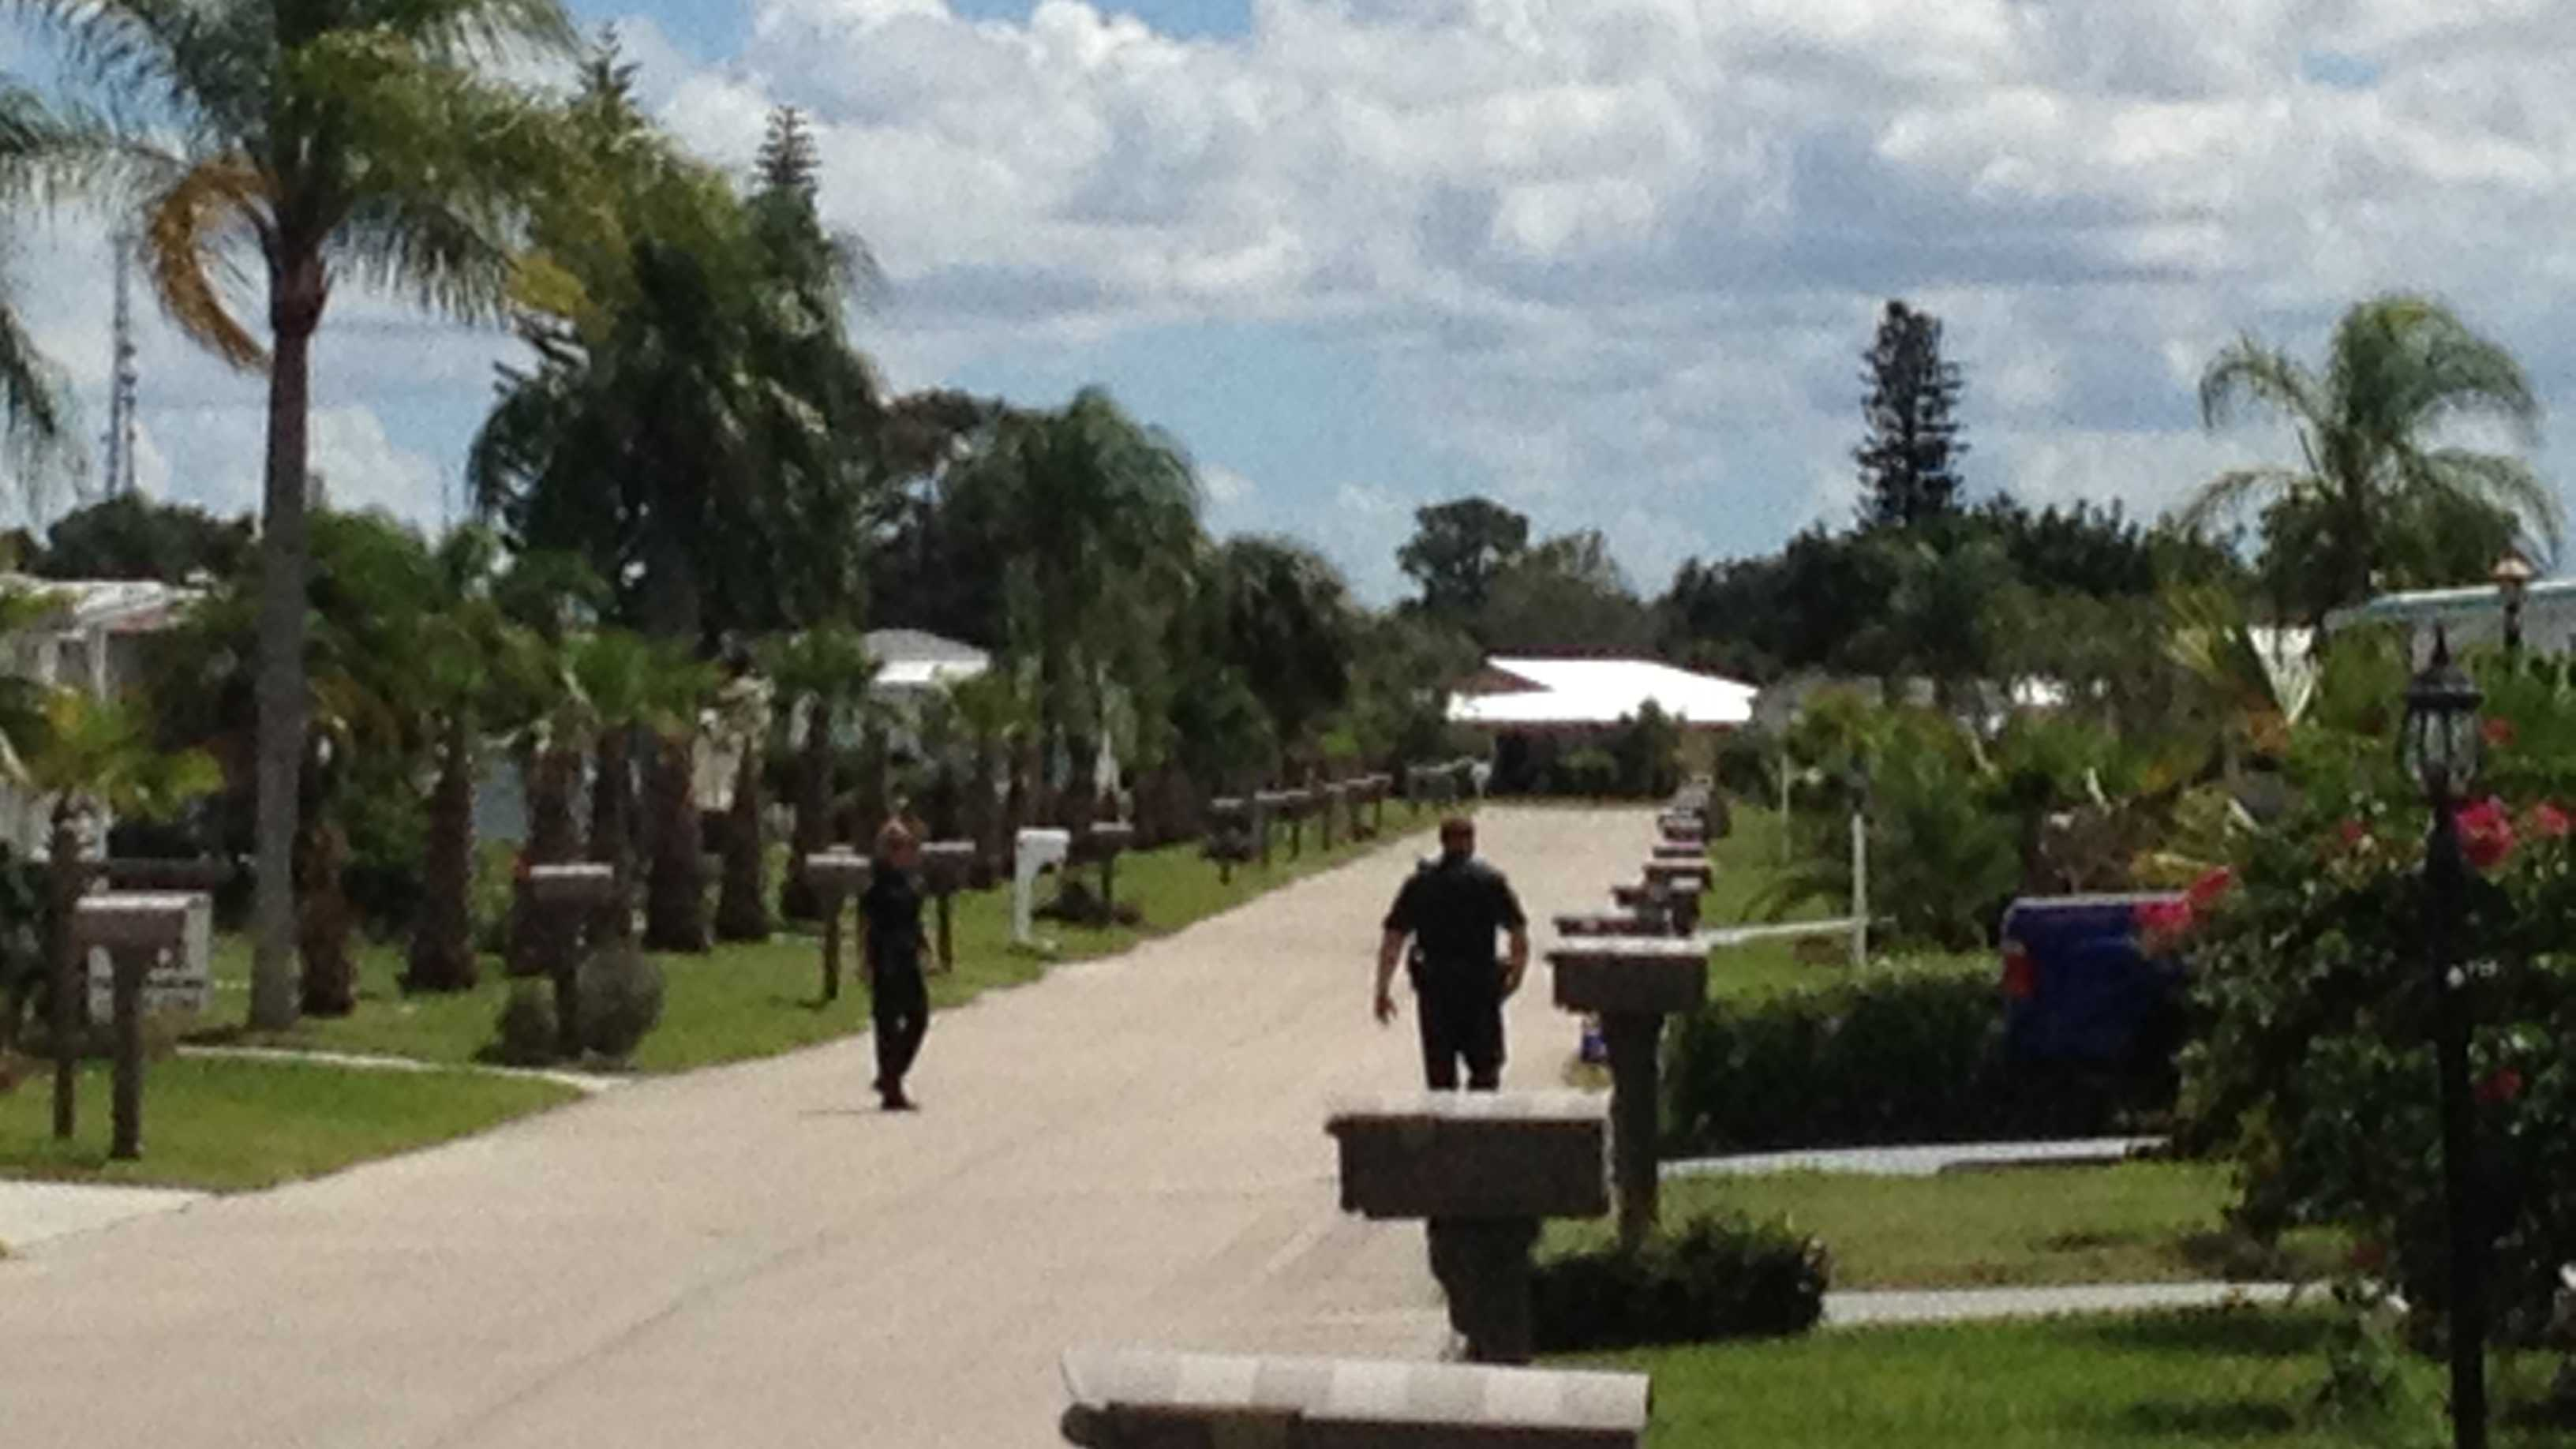 Deputies went door to door in a Port St. Lucie mobile home park to find out how many residences had been burglarized.